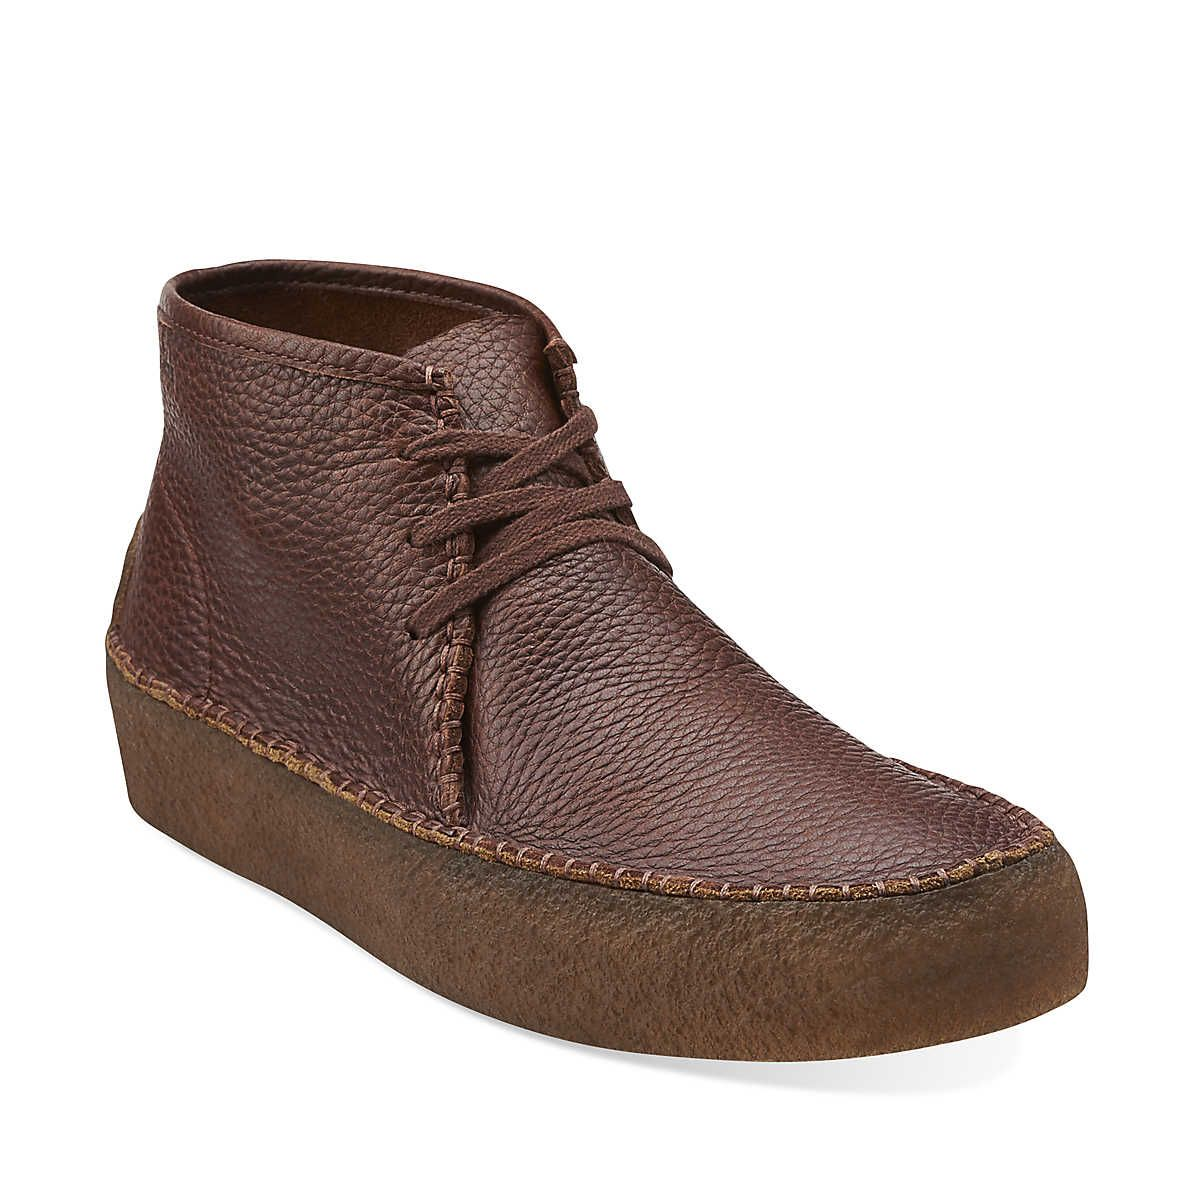 Wallabee Ridge In Brown Tumbled Leather Mens Boots From